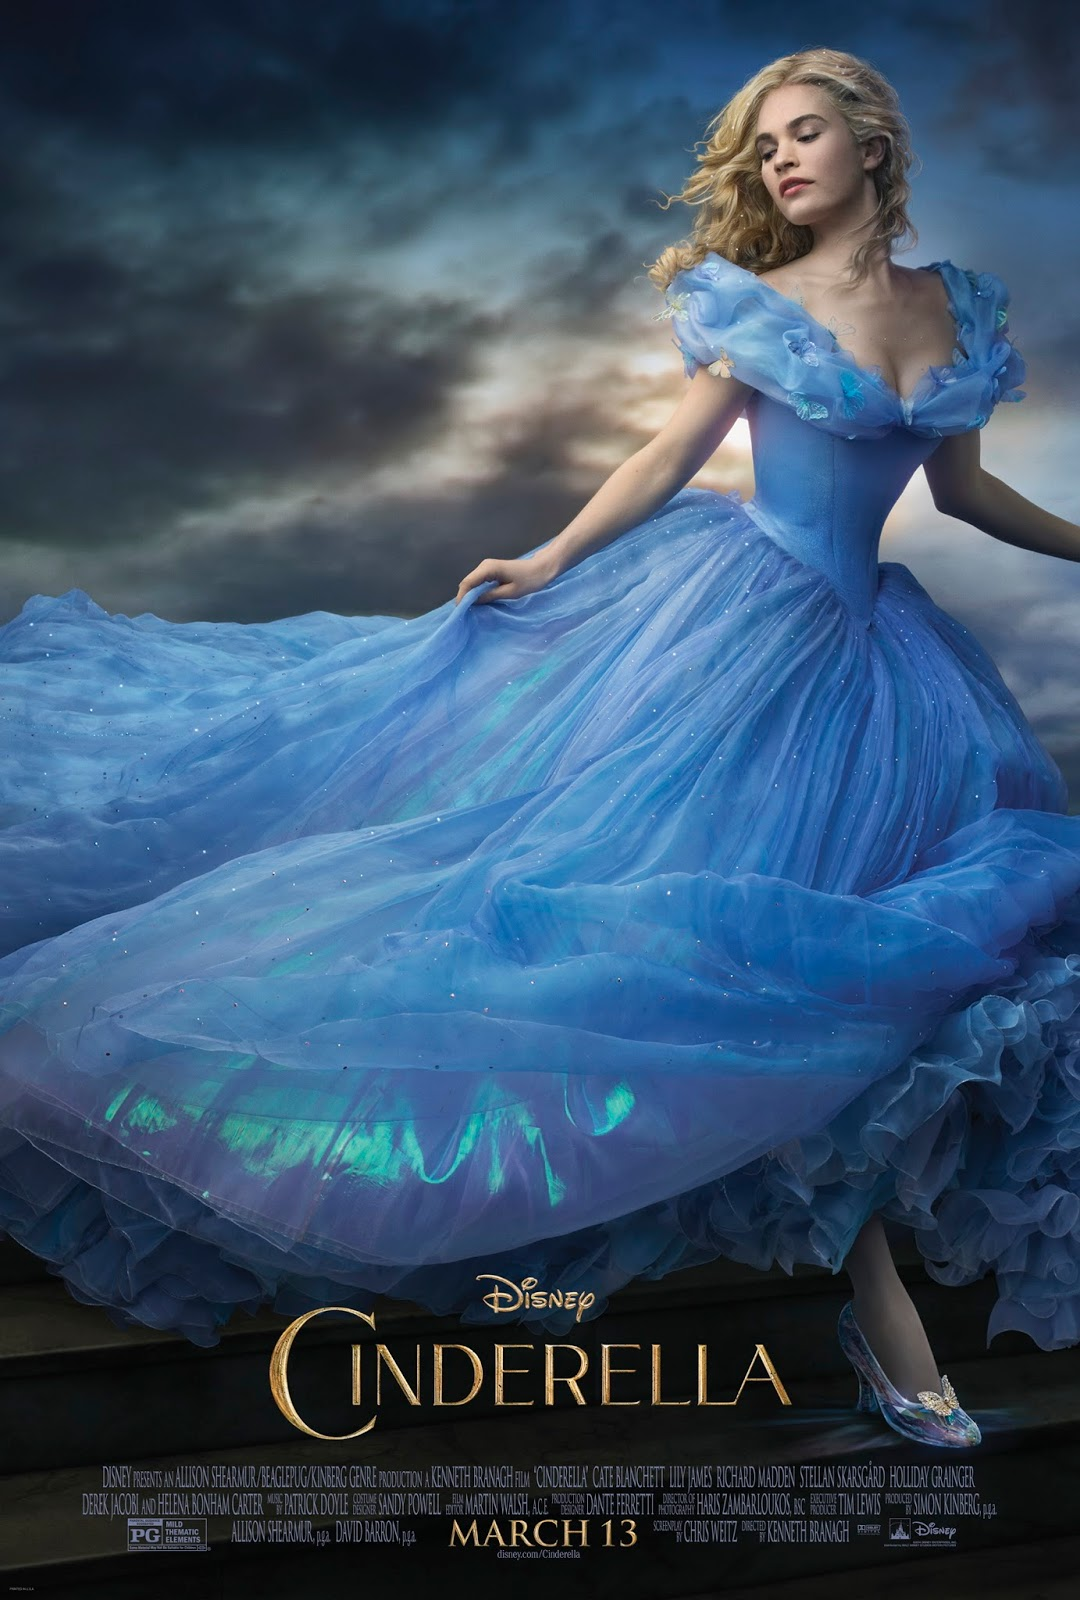 My review of the 2015 Cinderella Movie